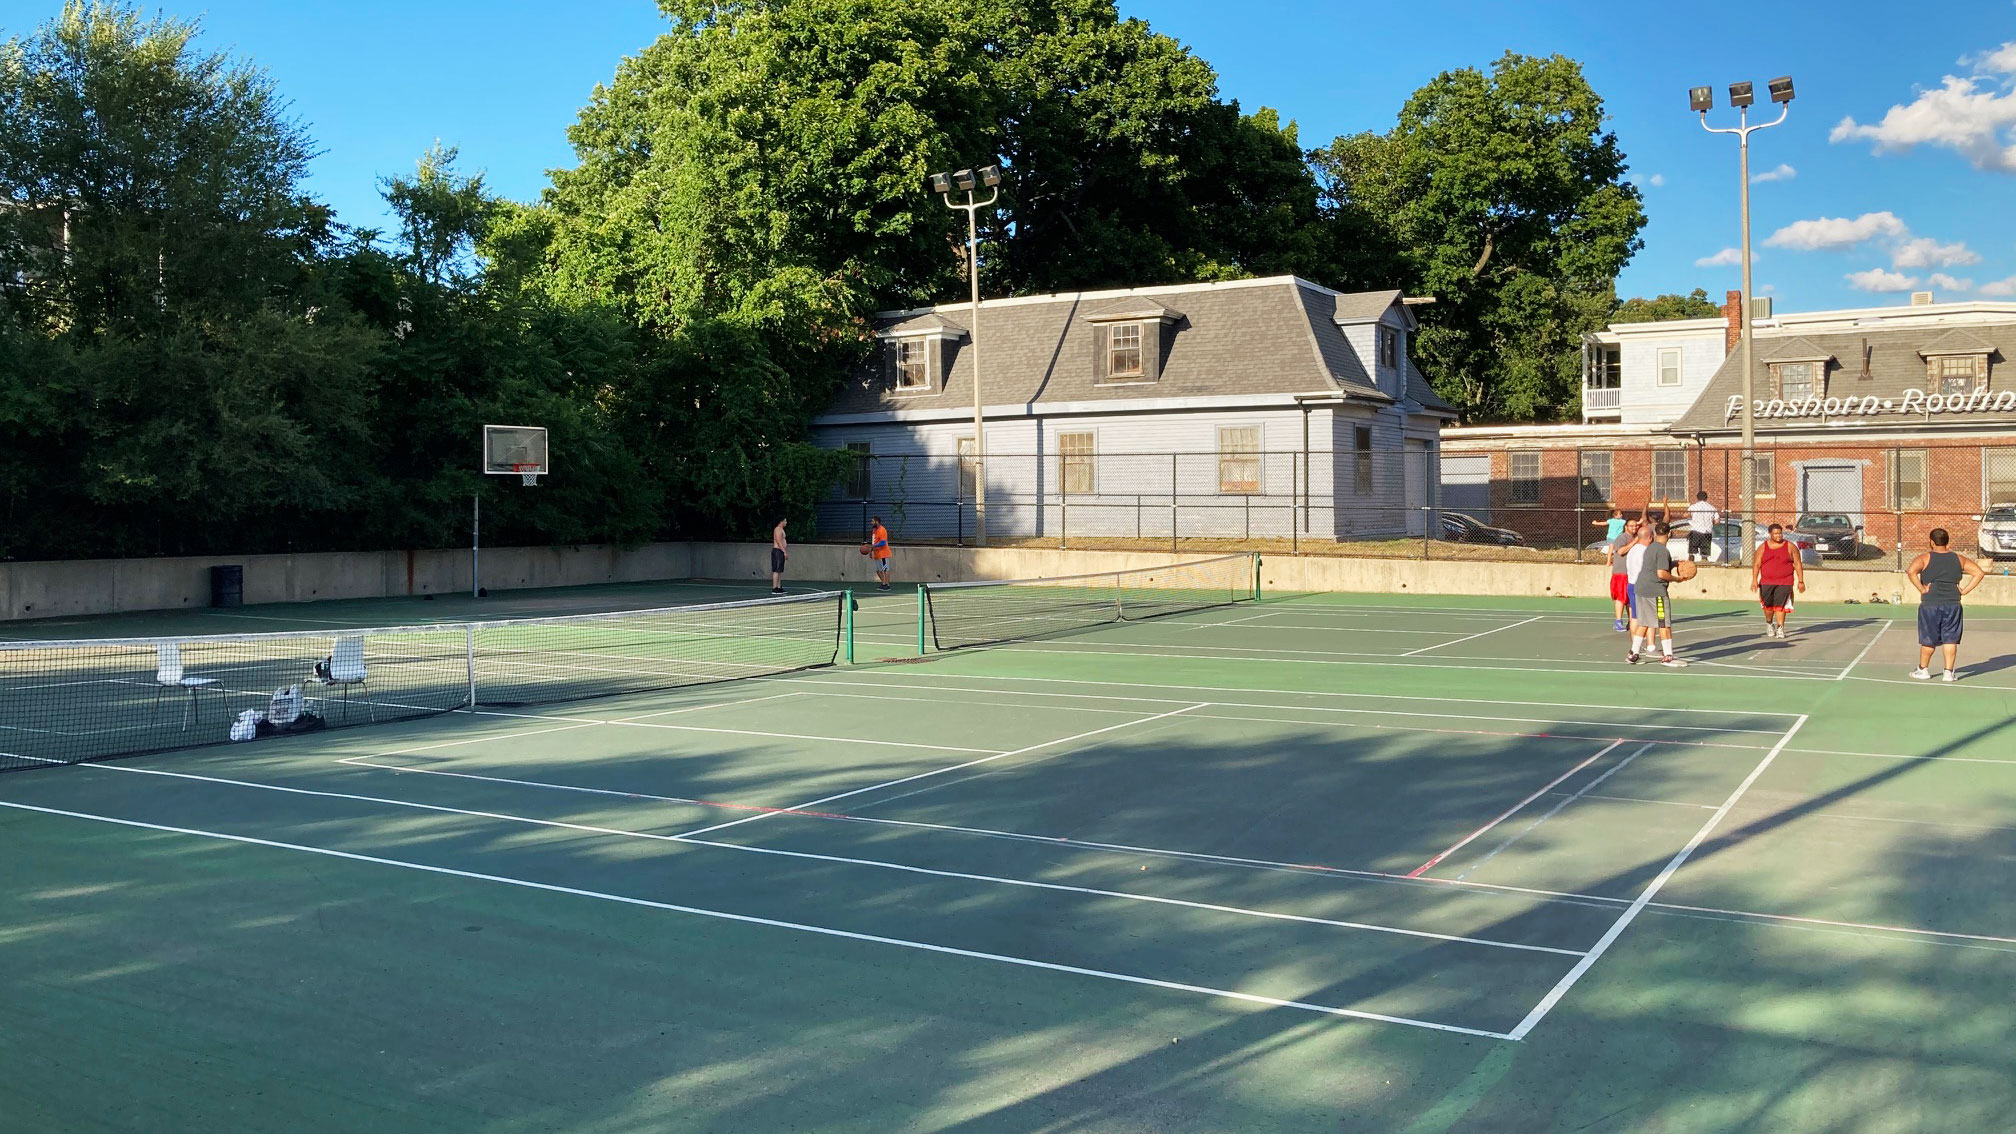 South Street Courts